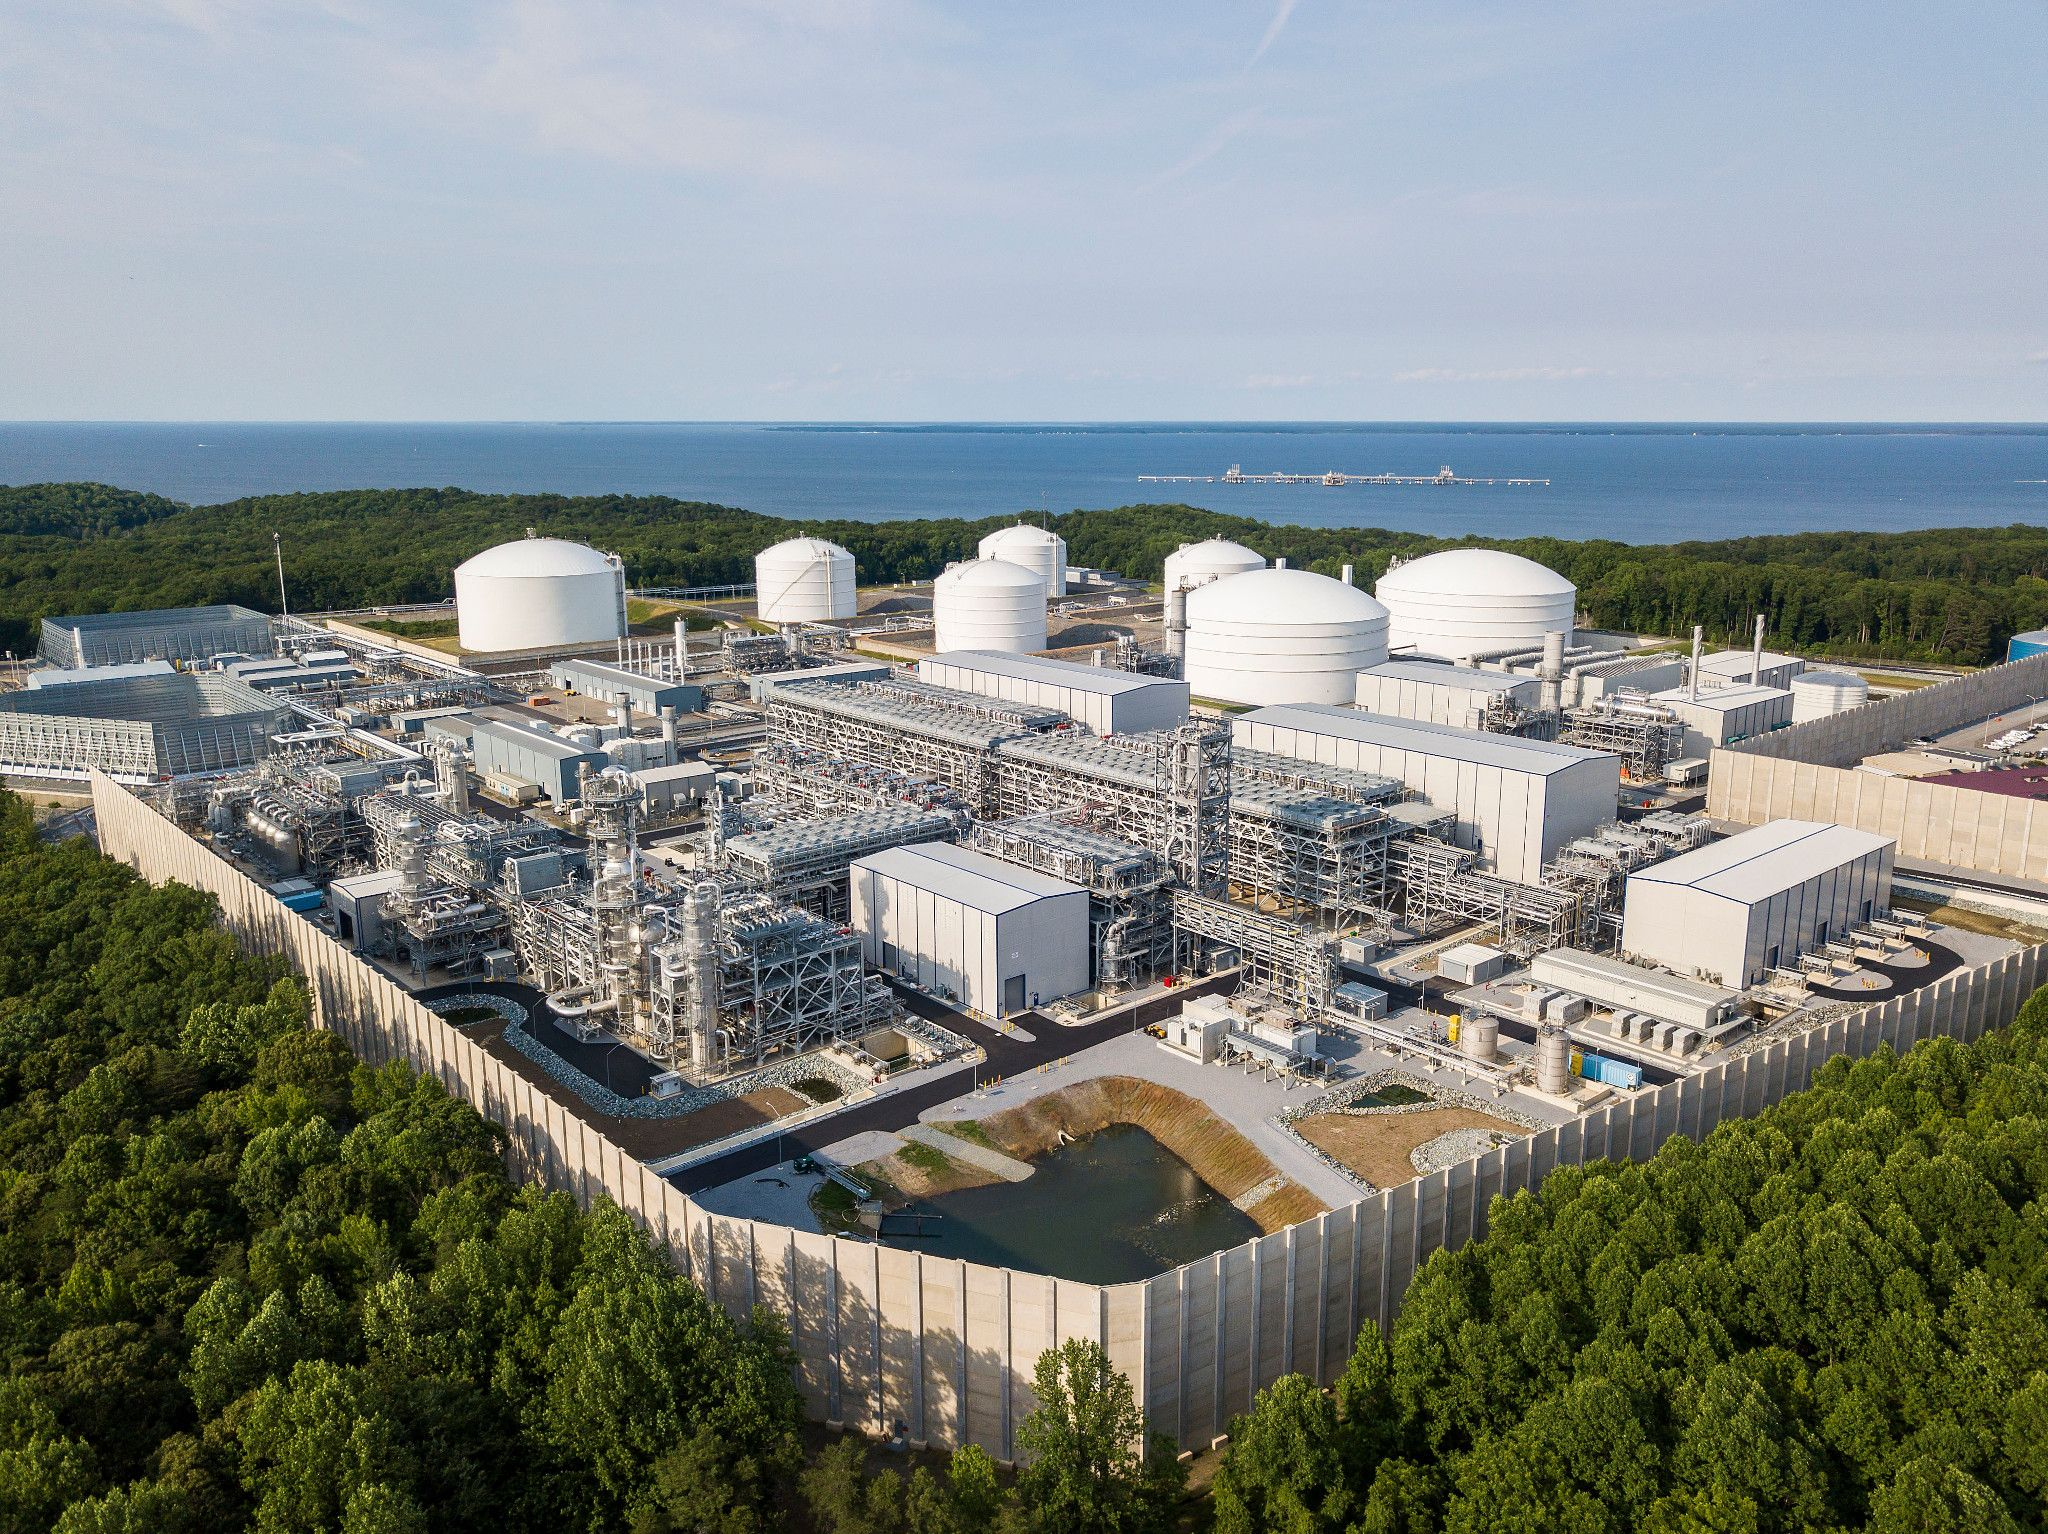 Cove Point LNG Export Terminal